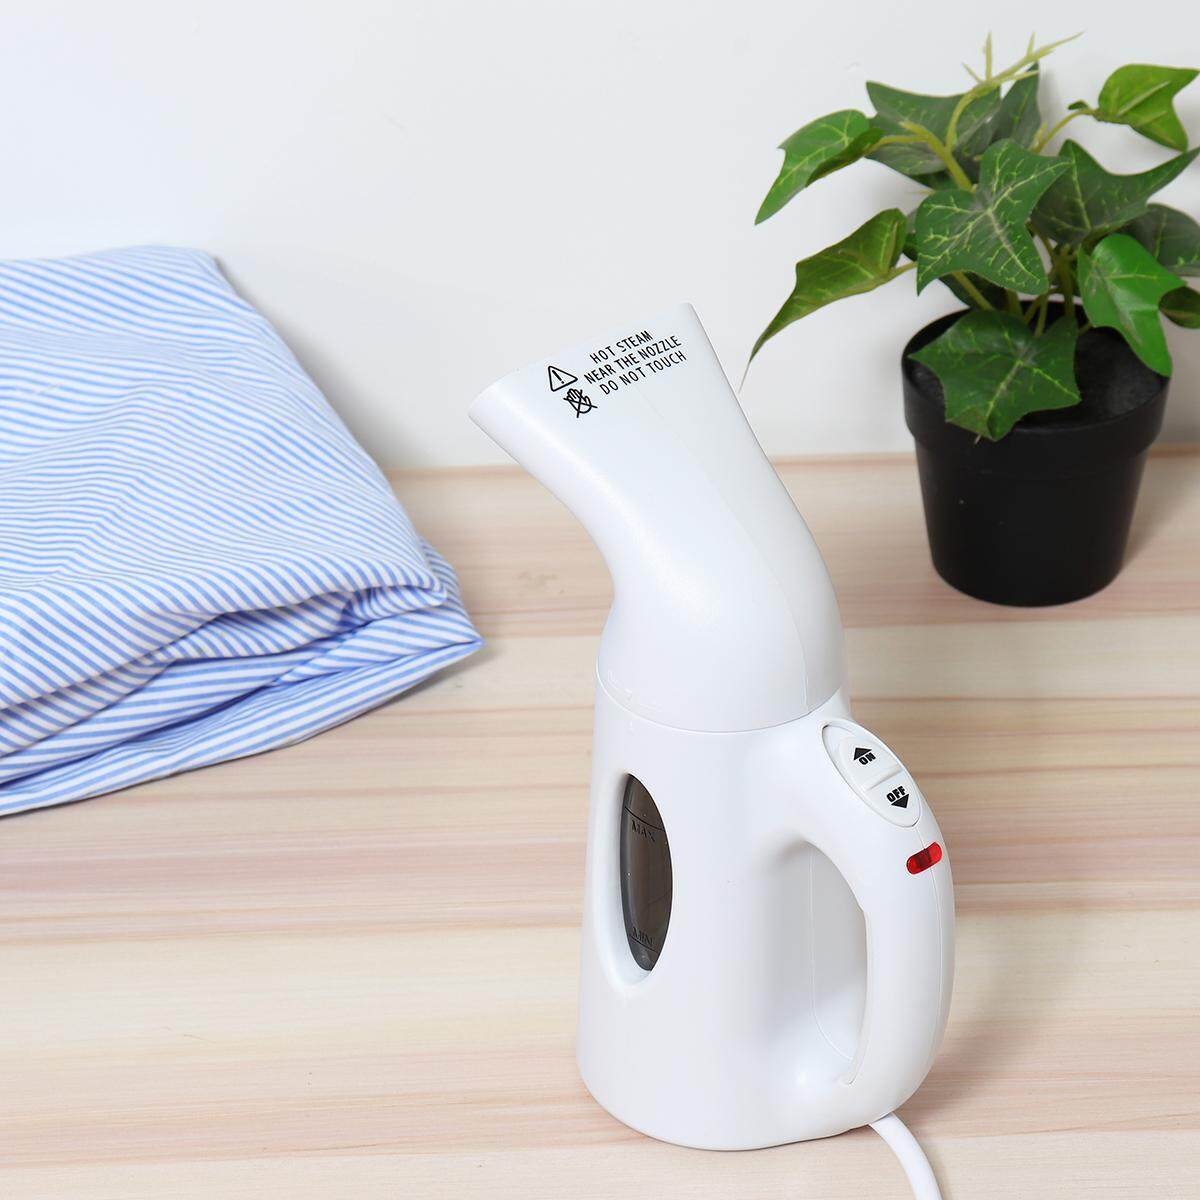 Garment Handheld Steamer Powerful Portable Travel Fabric Clothes Heat Tool 220V